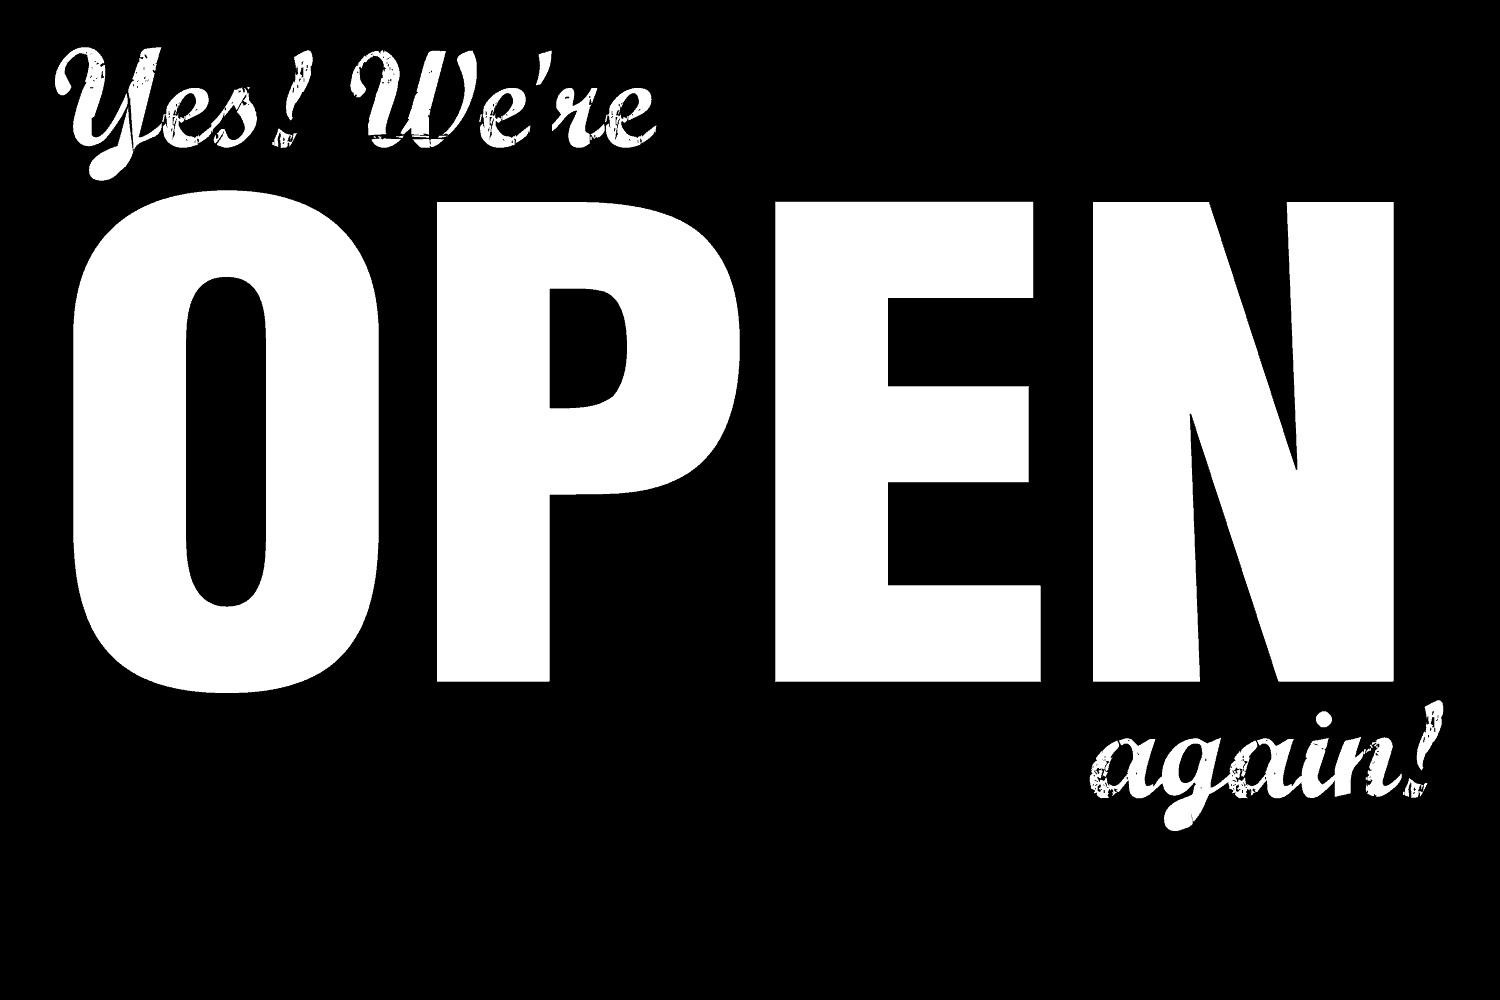 Yes, we're open again!